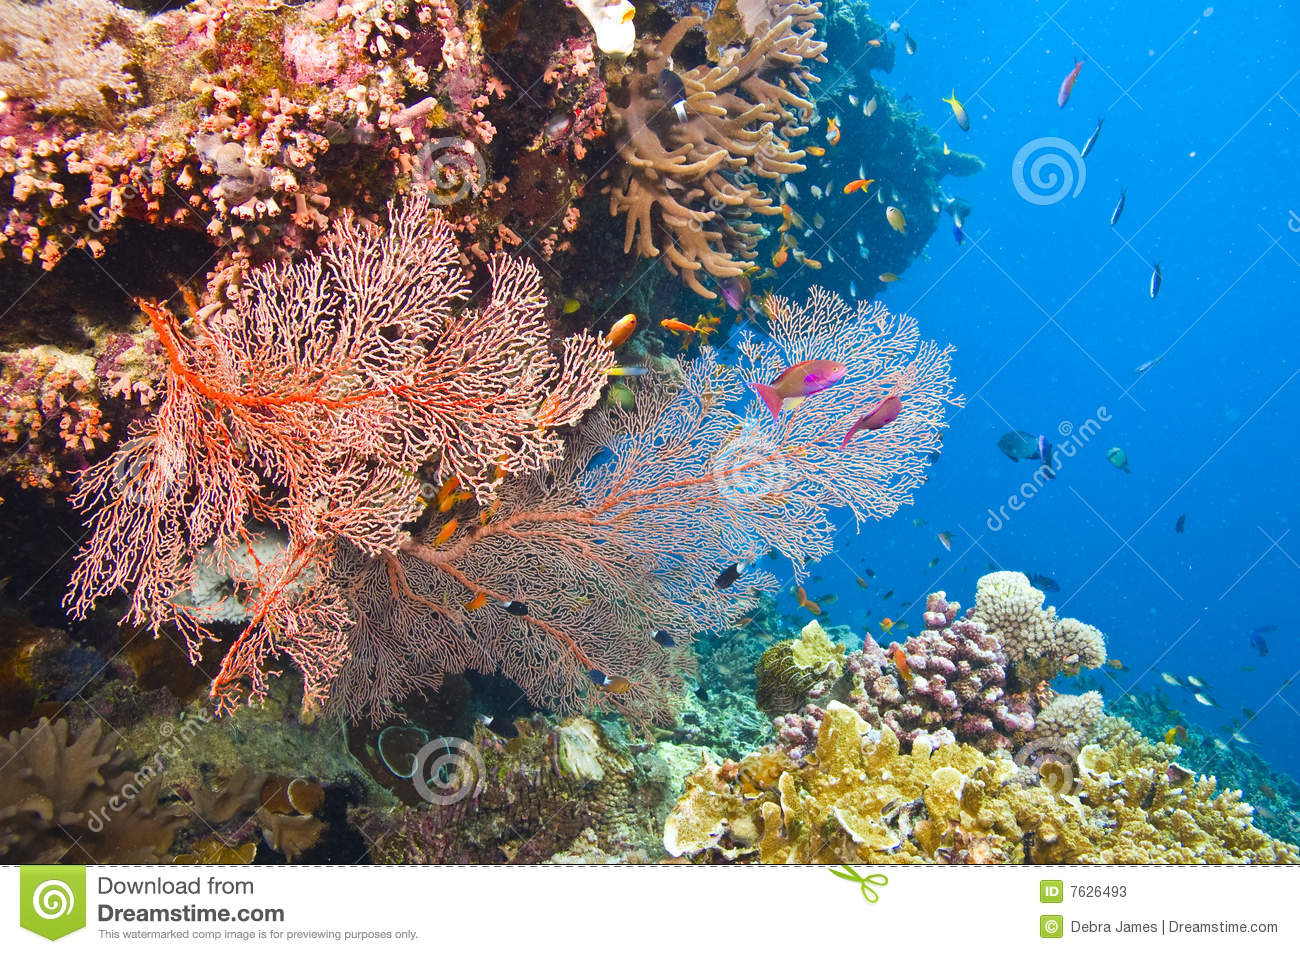 Gorgonian sea fans and coral